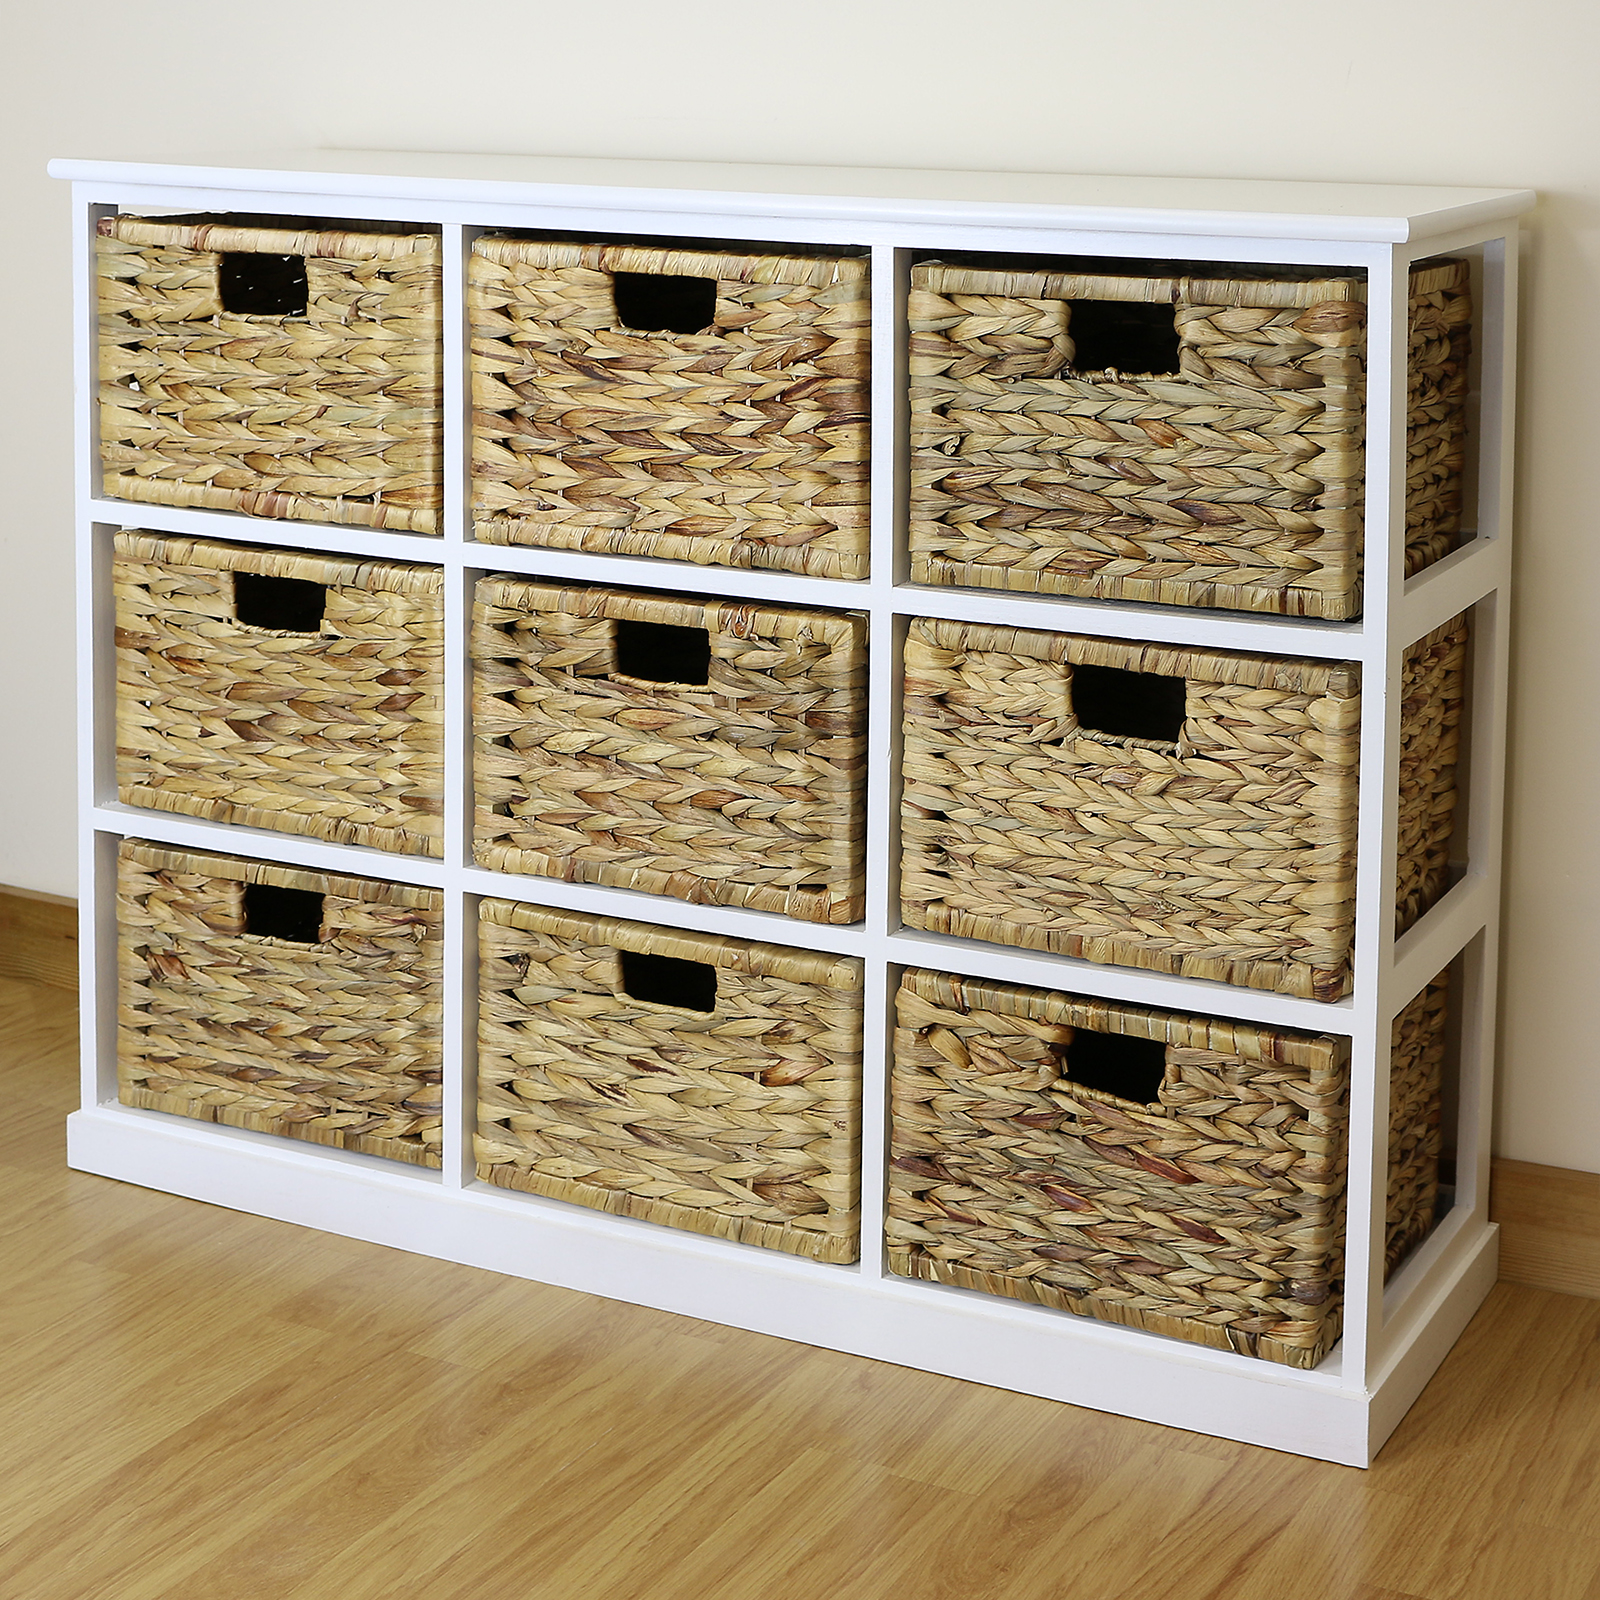 Details About White 3 Piece Storage Drawers Twin Bed Box: White 9 Drawer Basket Storage Side Unit Lounge/Bathroom